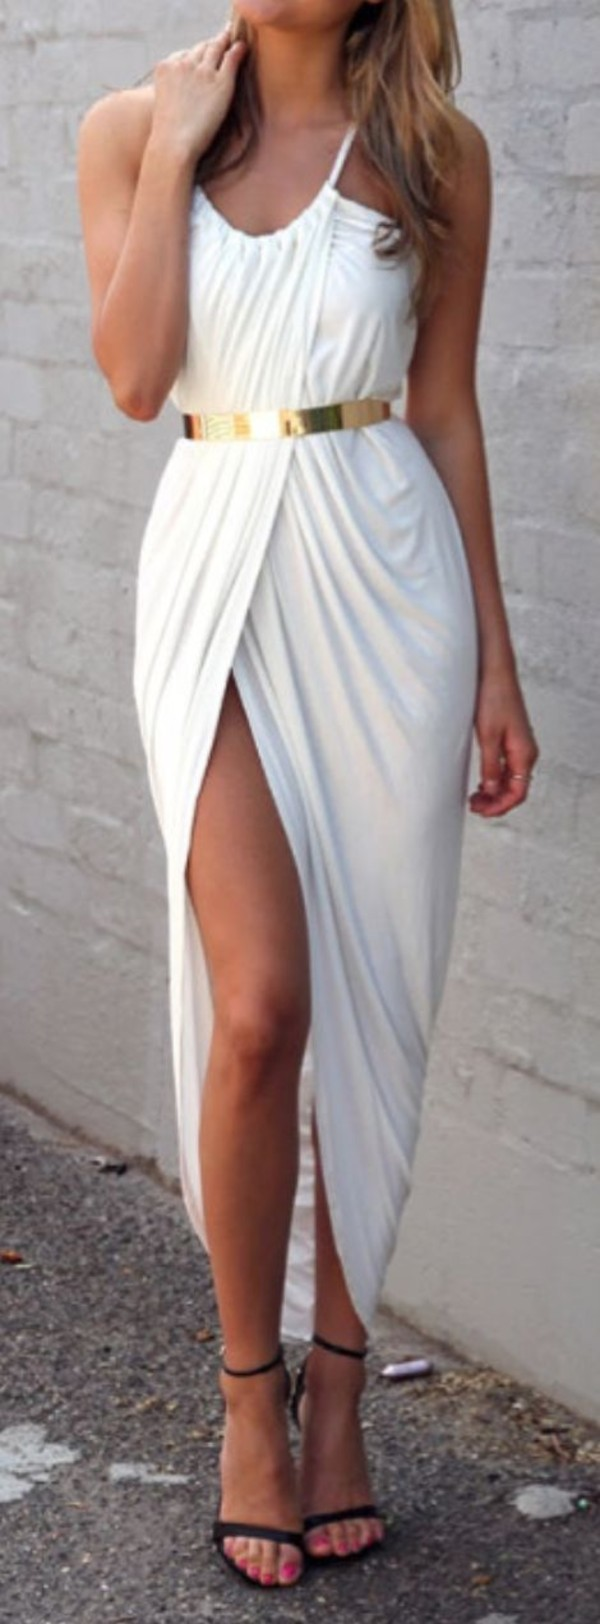 dress white white dress sexy slit blue blue dress belt greek goddess slit dress draped dress draped grecian maxi dress maxi greek gold belt maxi dress spring tuliphem tulip dress midi dress grecian dress white maxi dress grecian toga dress want love white maxi goddess dress with gold belt cute gold summer cute dress long dress white dress long cute long white long dress white long dress open leg summer dress slit white dress flowy cute class girly women classy ebonylace.storenvy asymmetrical gold sequins belt dress gold ring godess summer shorts summer outfits drapped glamgerous asymmetrical dress flowy dress sexy dress store colorful slit dress sleeveless dress leg slits gold belt dress red dress red dress with slit dress greece grecian wrap dress greek style long dress asymmetrical dress style front split long white dres front split  dress slit prom goddess dress white and gold dress boho dress formal dress maxi dress beautiful halo white long dress belted dress